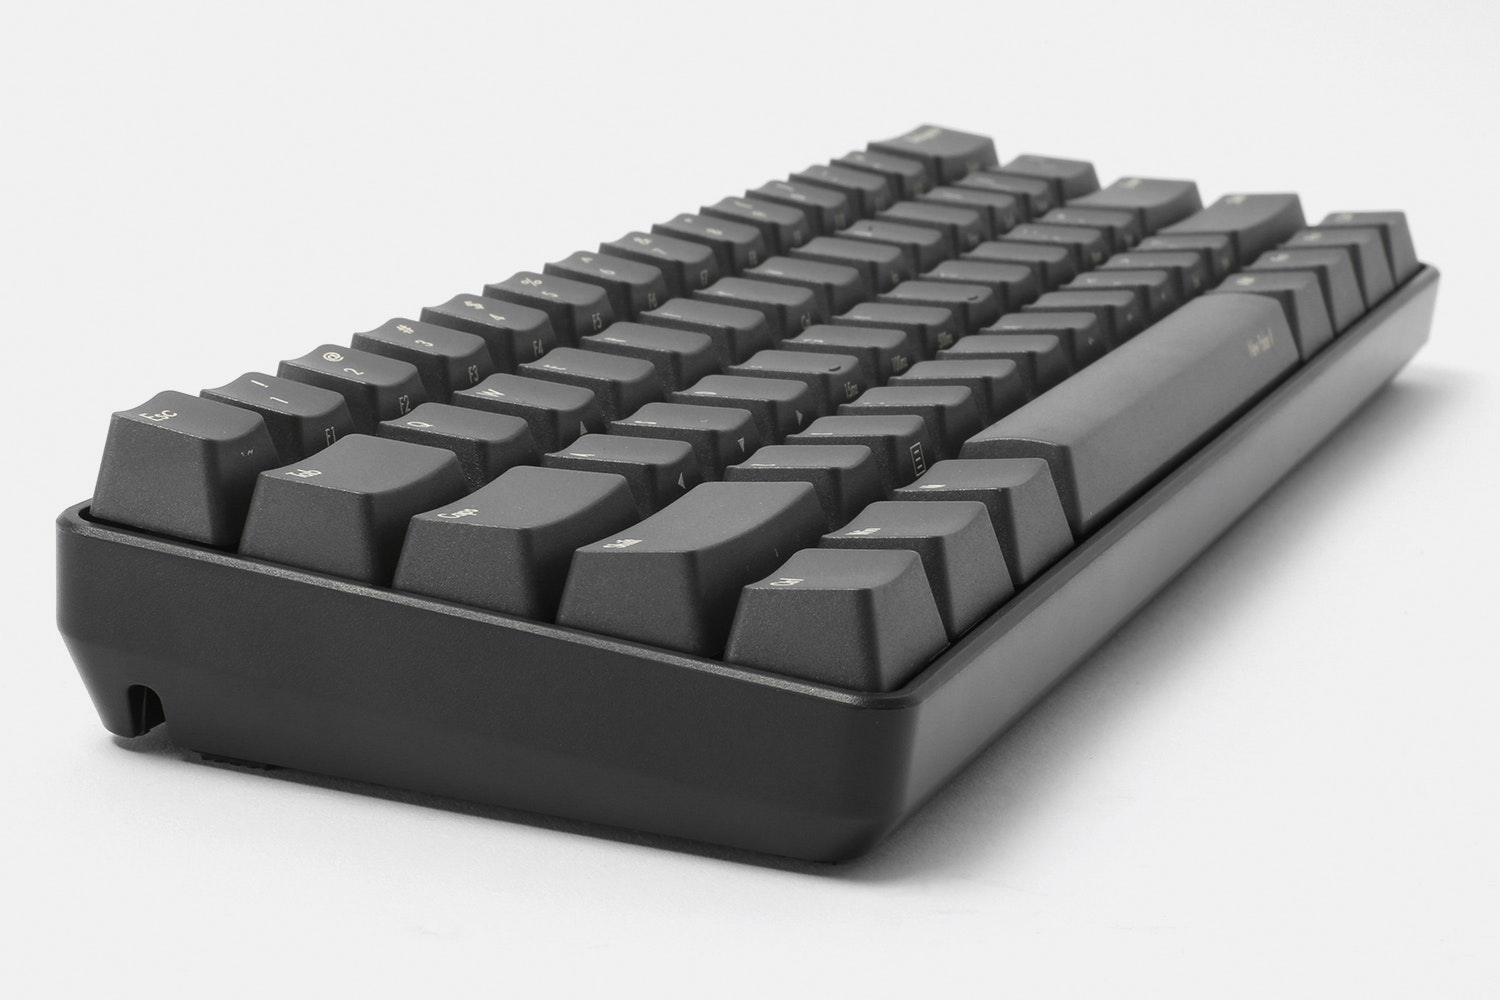 New Poker II Mechanical Keyboard